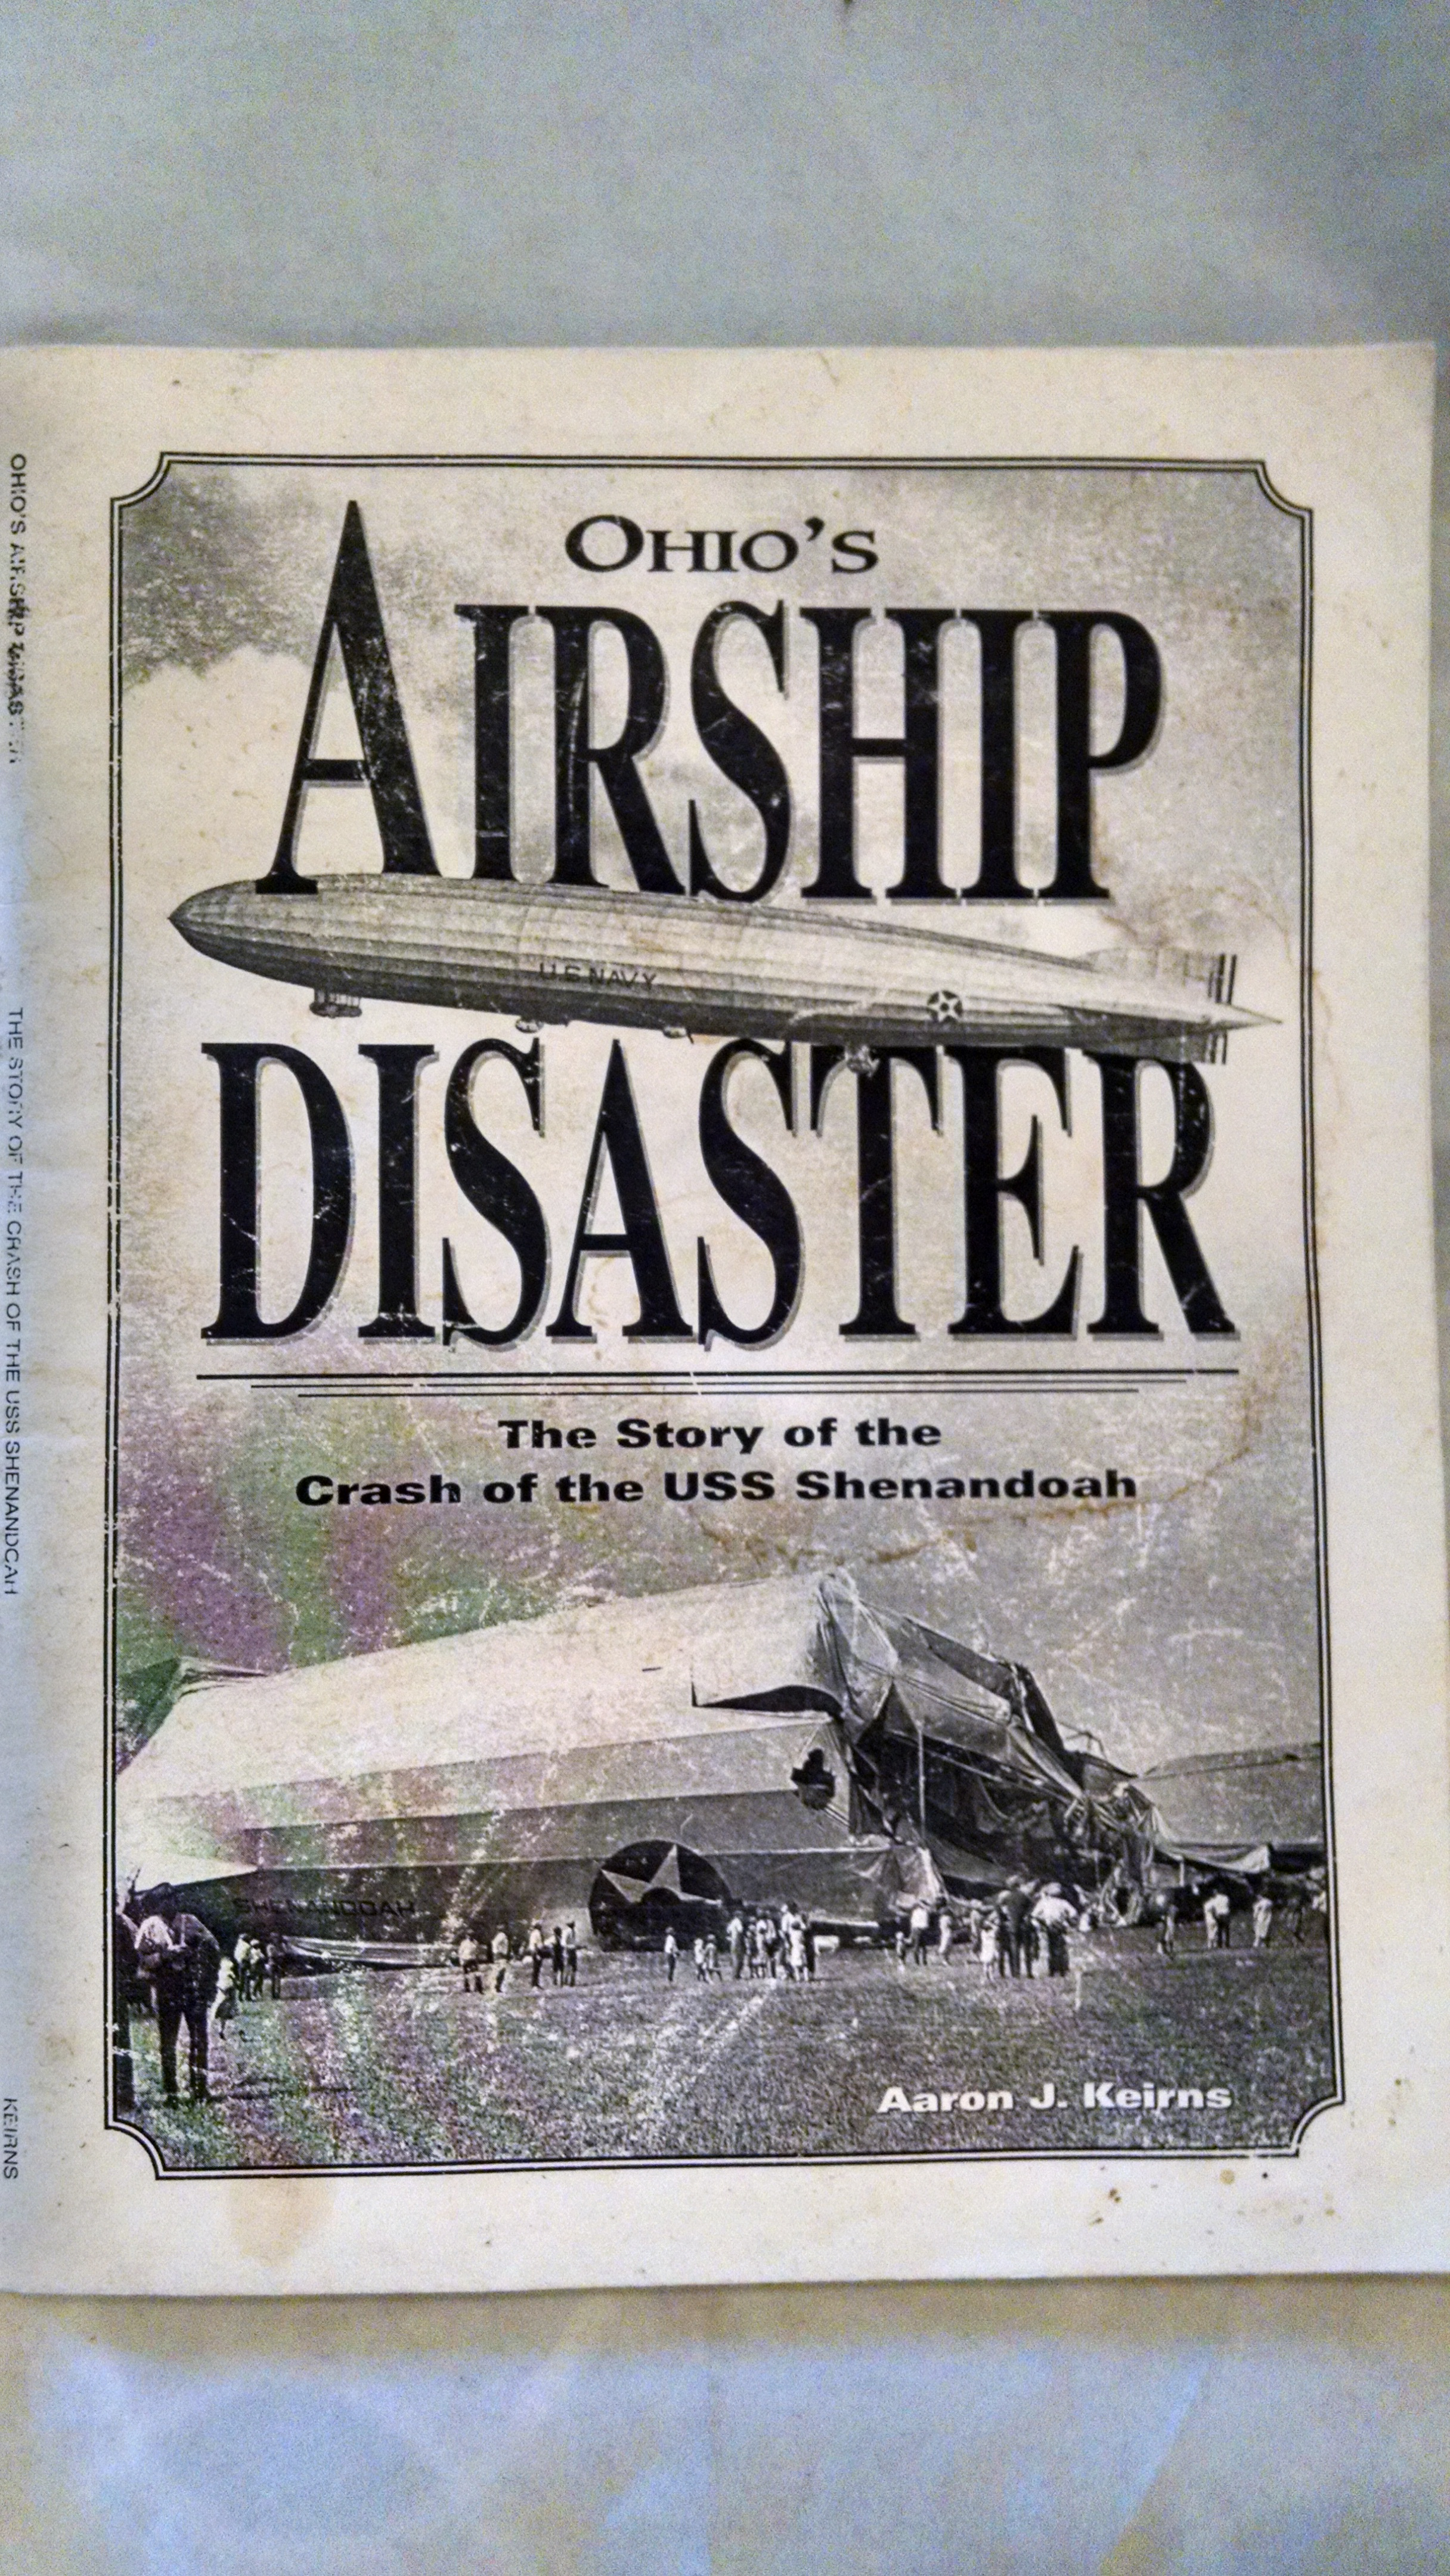 Image for OHIO'S AIRSHIP DISASTER  THE STORY OF THE CRASH OF THE USS SHENANDOAH